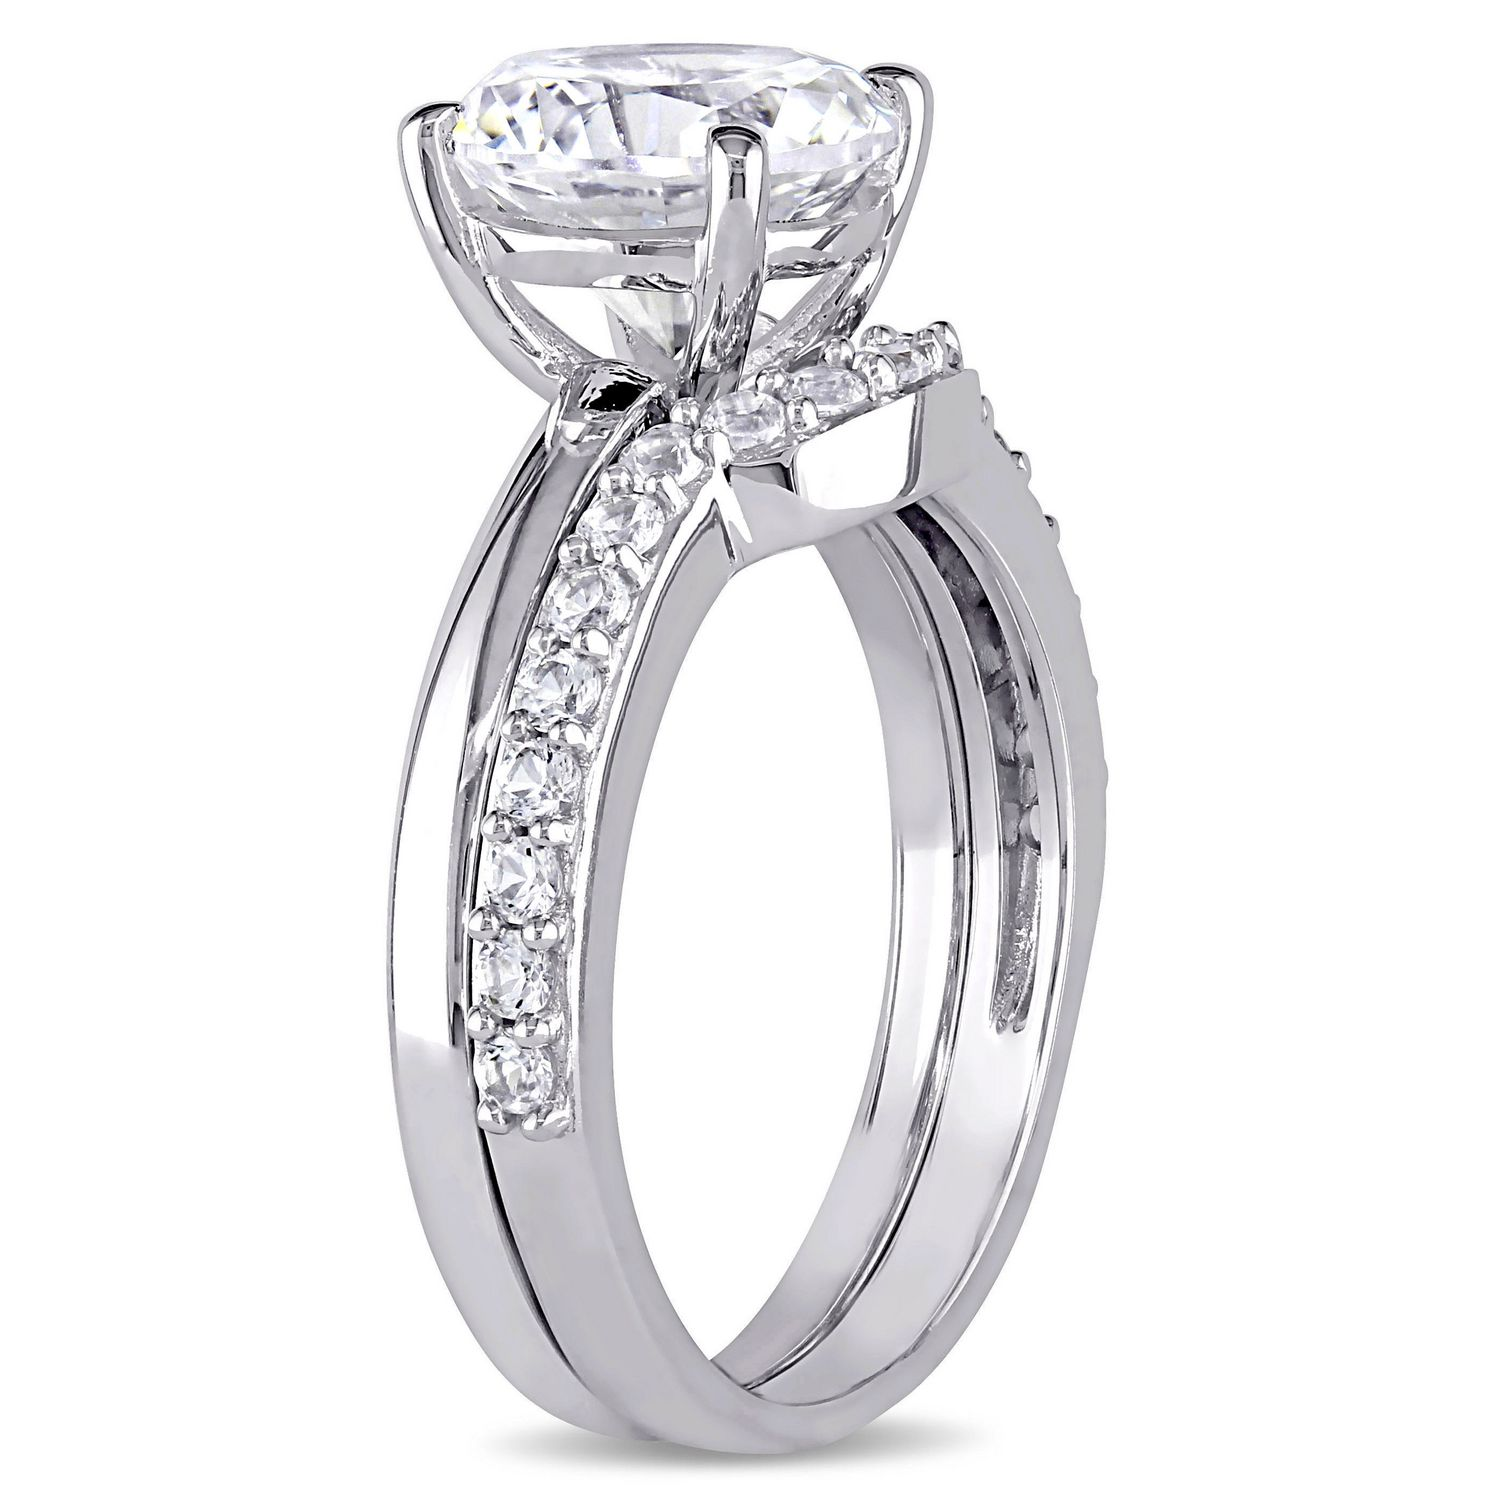 t zirconia silver sterling and walmart ip g w rings carat com round cushion halo engagement miabella cubic cut double ring